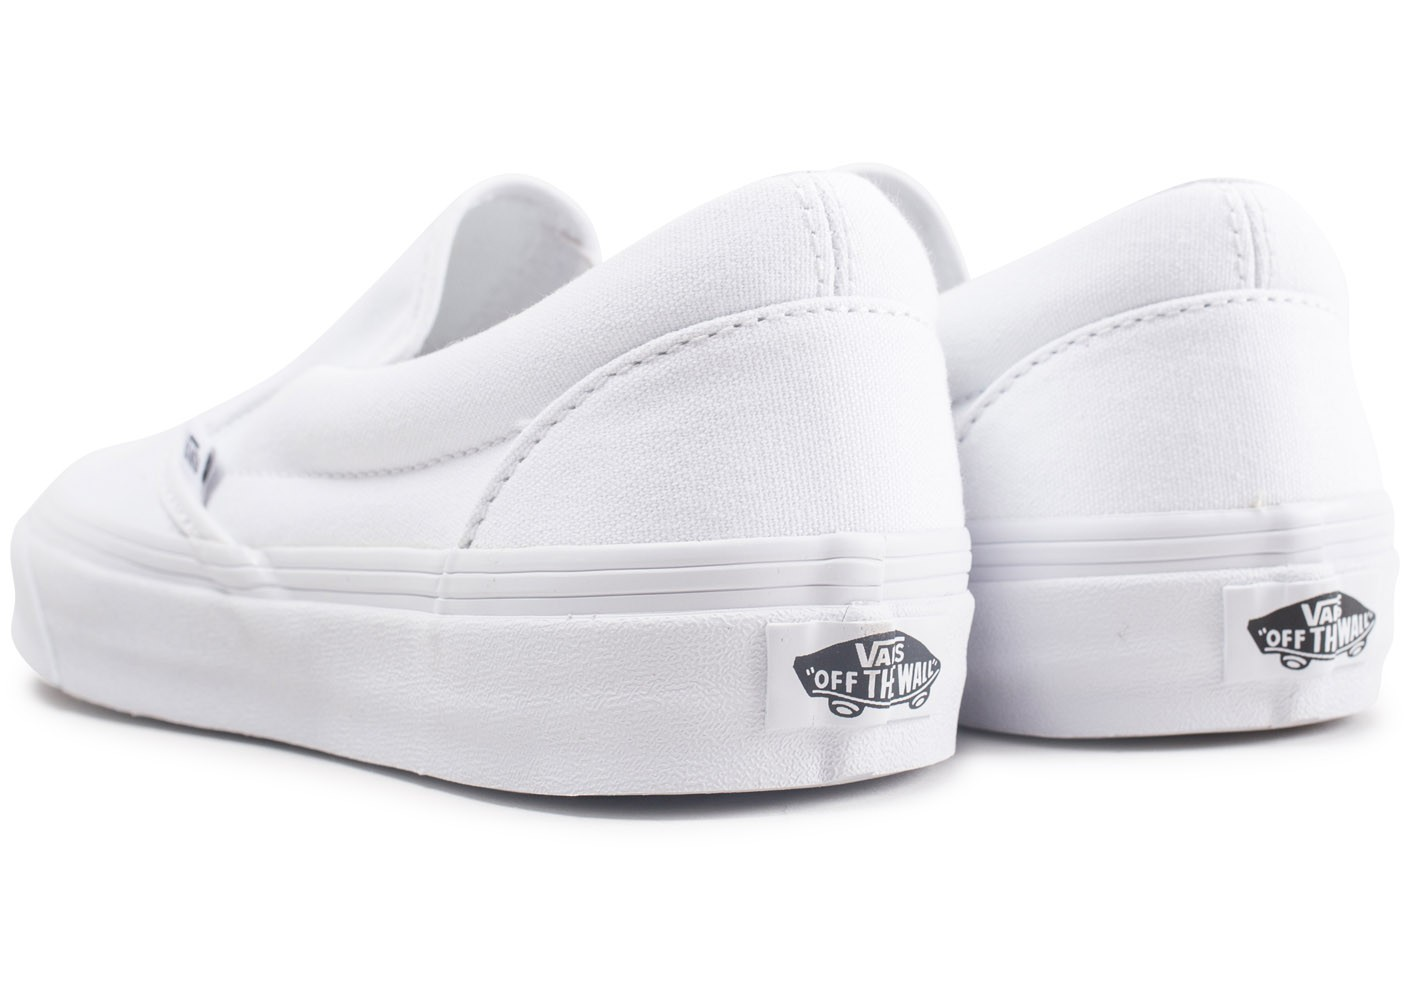 Vans Classic Slip-On blanche - Chaussures Baskets homme ...